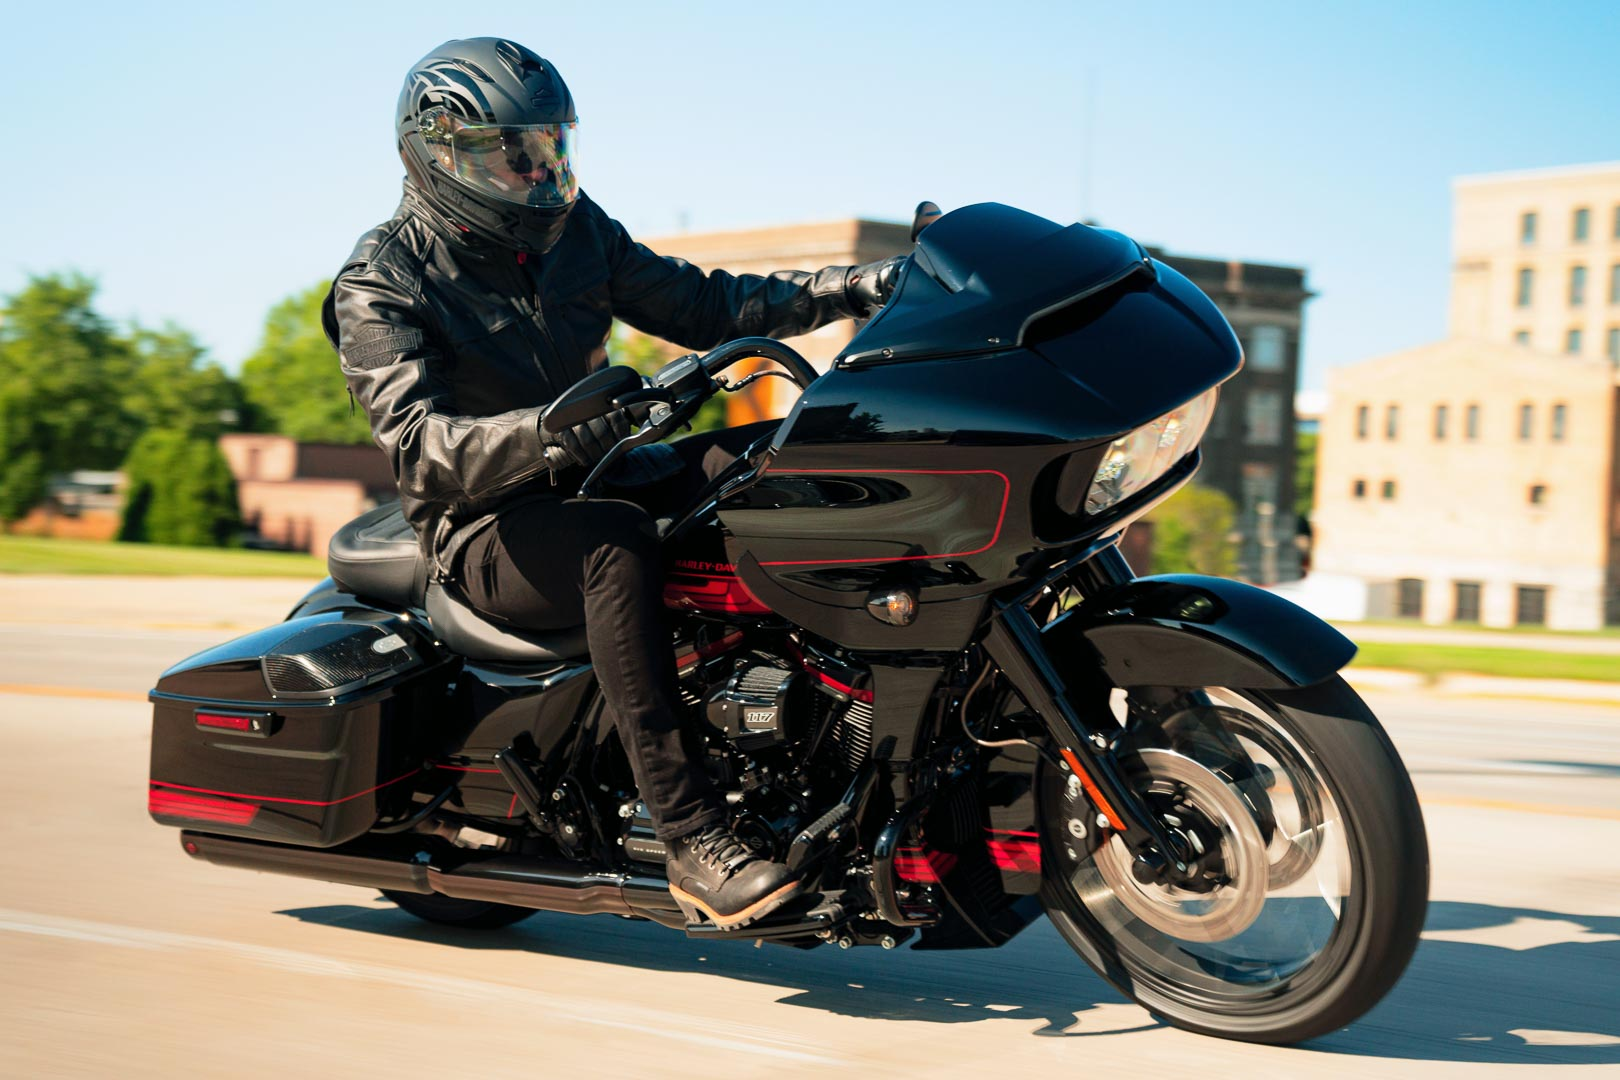 2021 Harley-Davidson CVO Road Glide: Colors